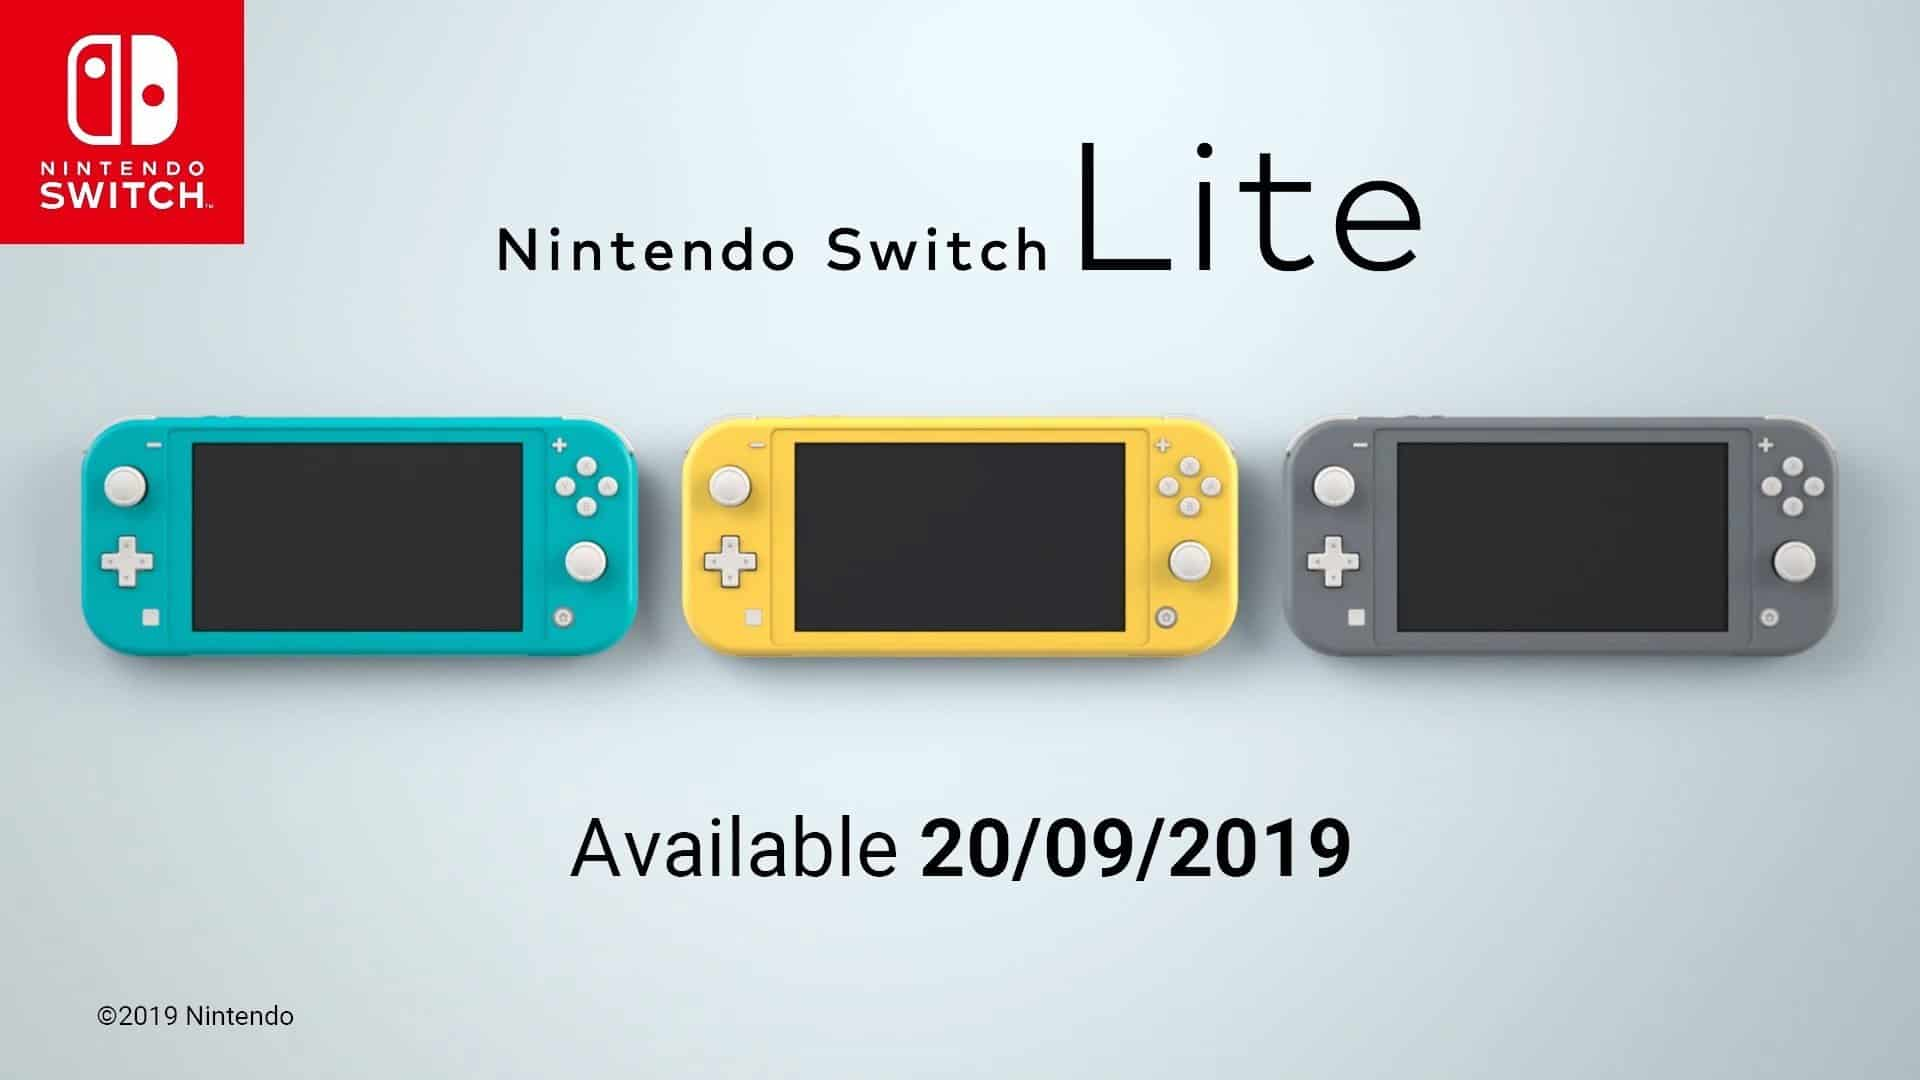 Nintendo Introduces Nintendo Switch Lite, A Device Dedicated To Handheld Gameplay